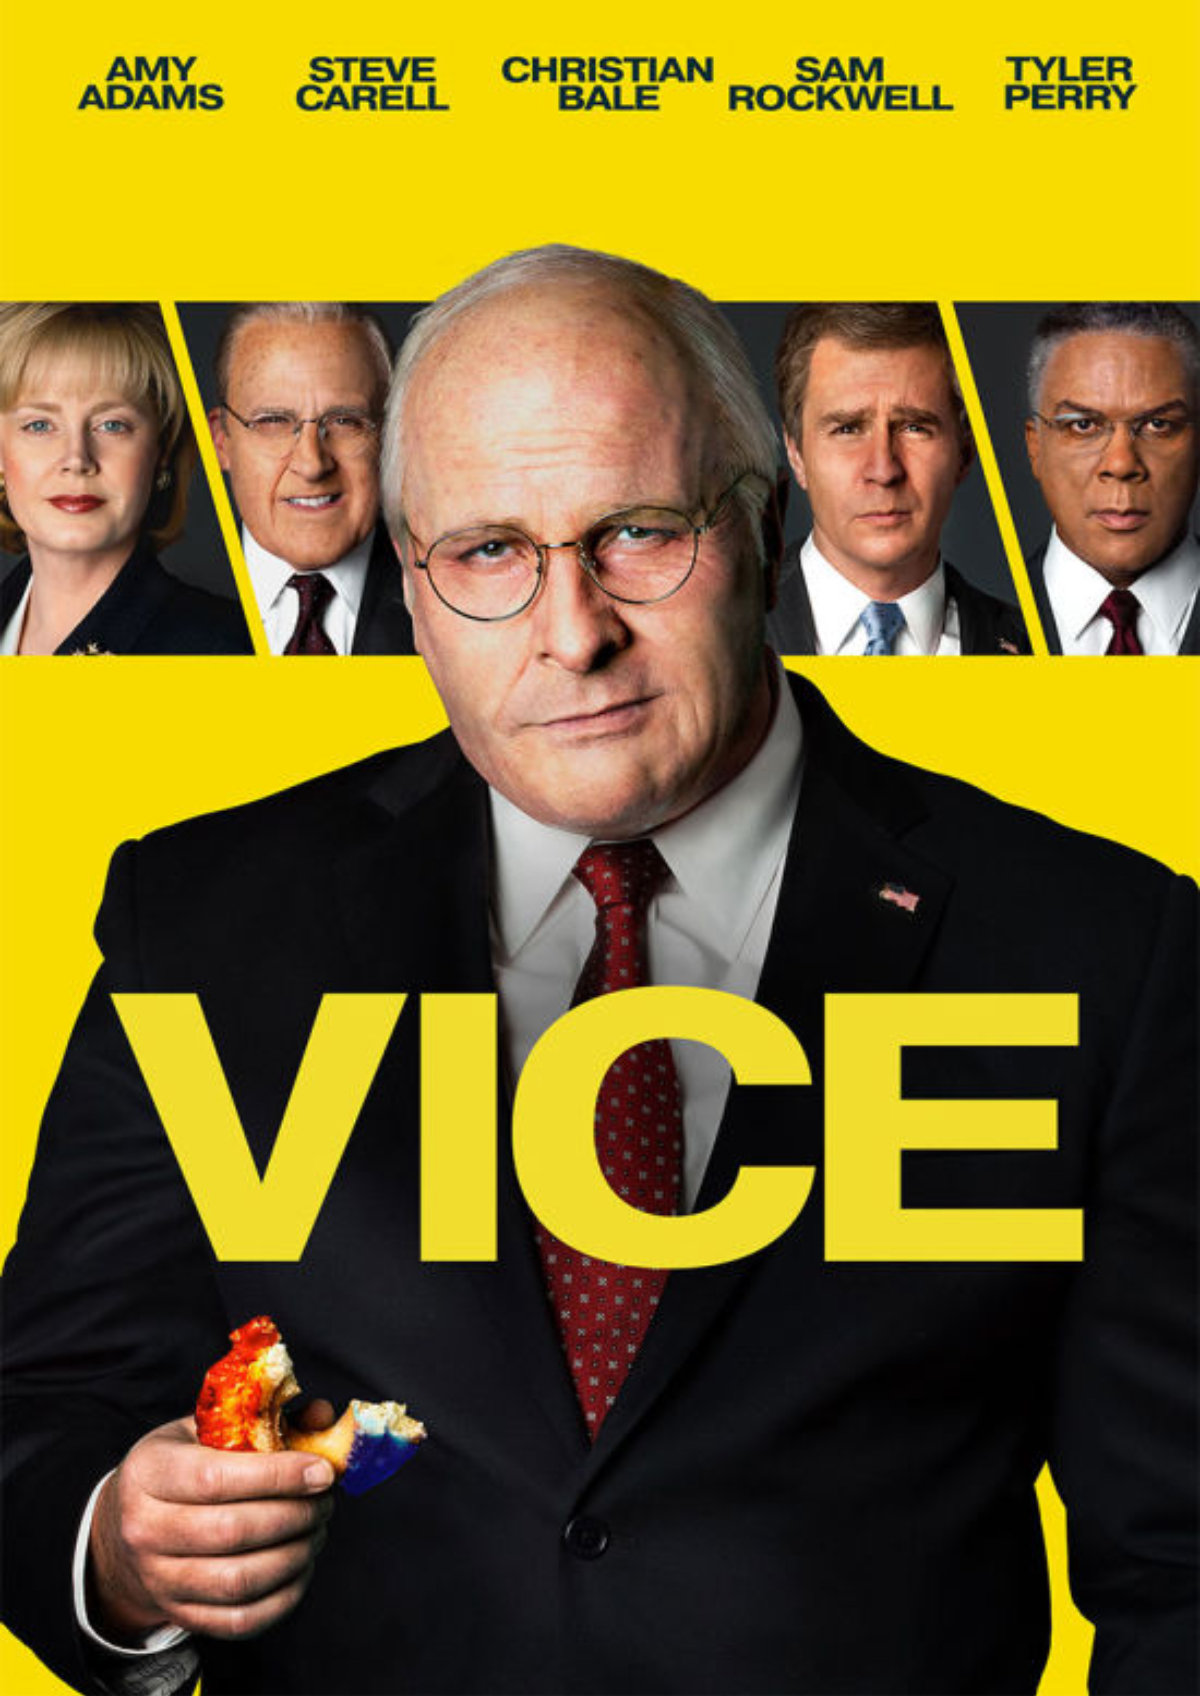 'Vice' movie poster